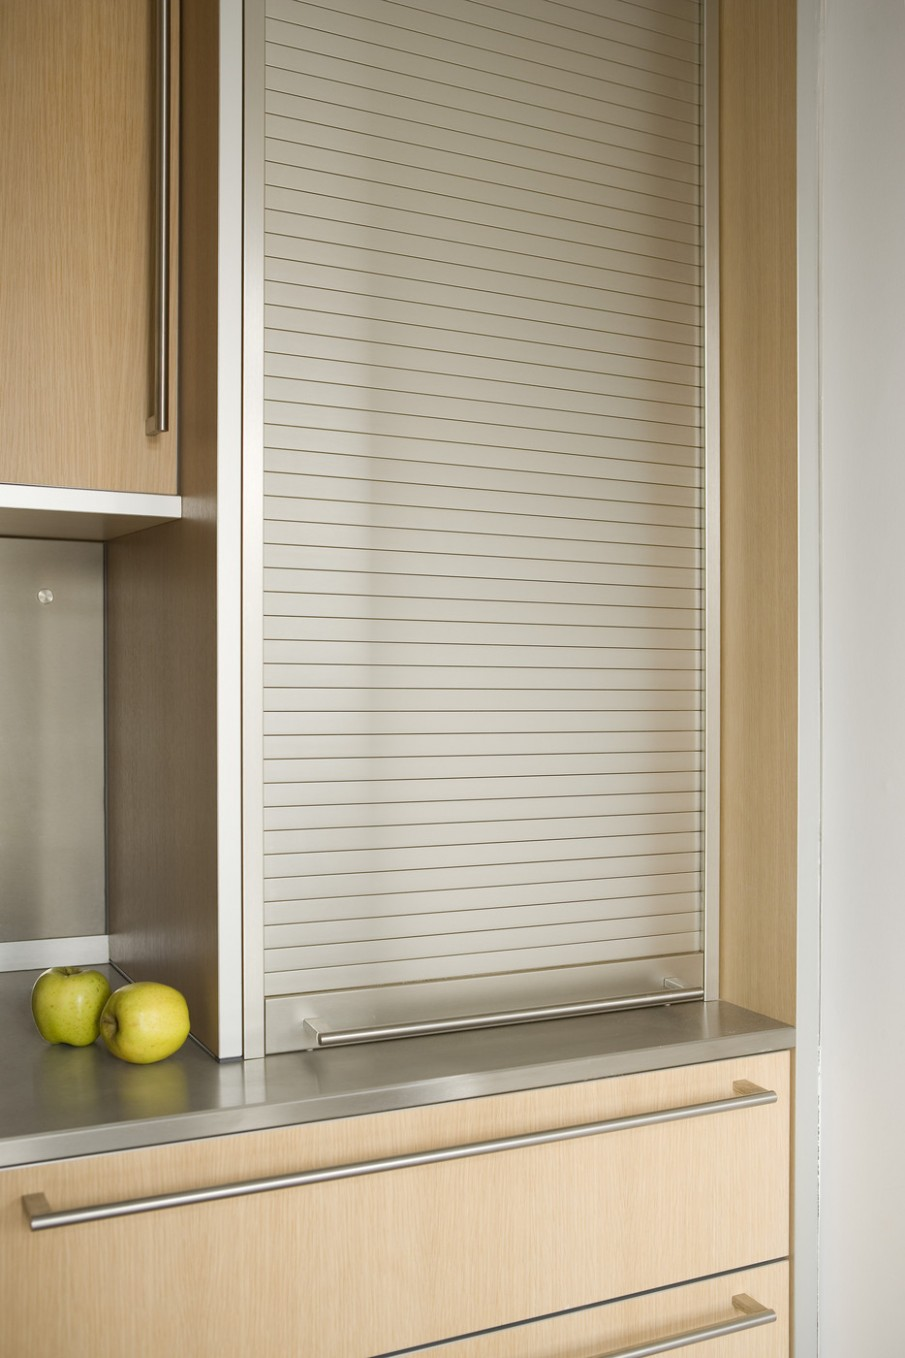 Roller Shutter Photos, Design, Ideas, Remodel, and Decor - Lonny - Aluminum Roller Shutters For Kitchen Cabinets